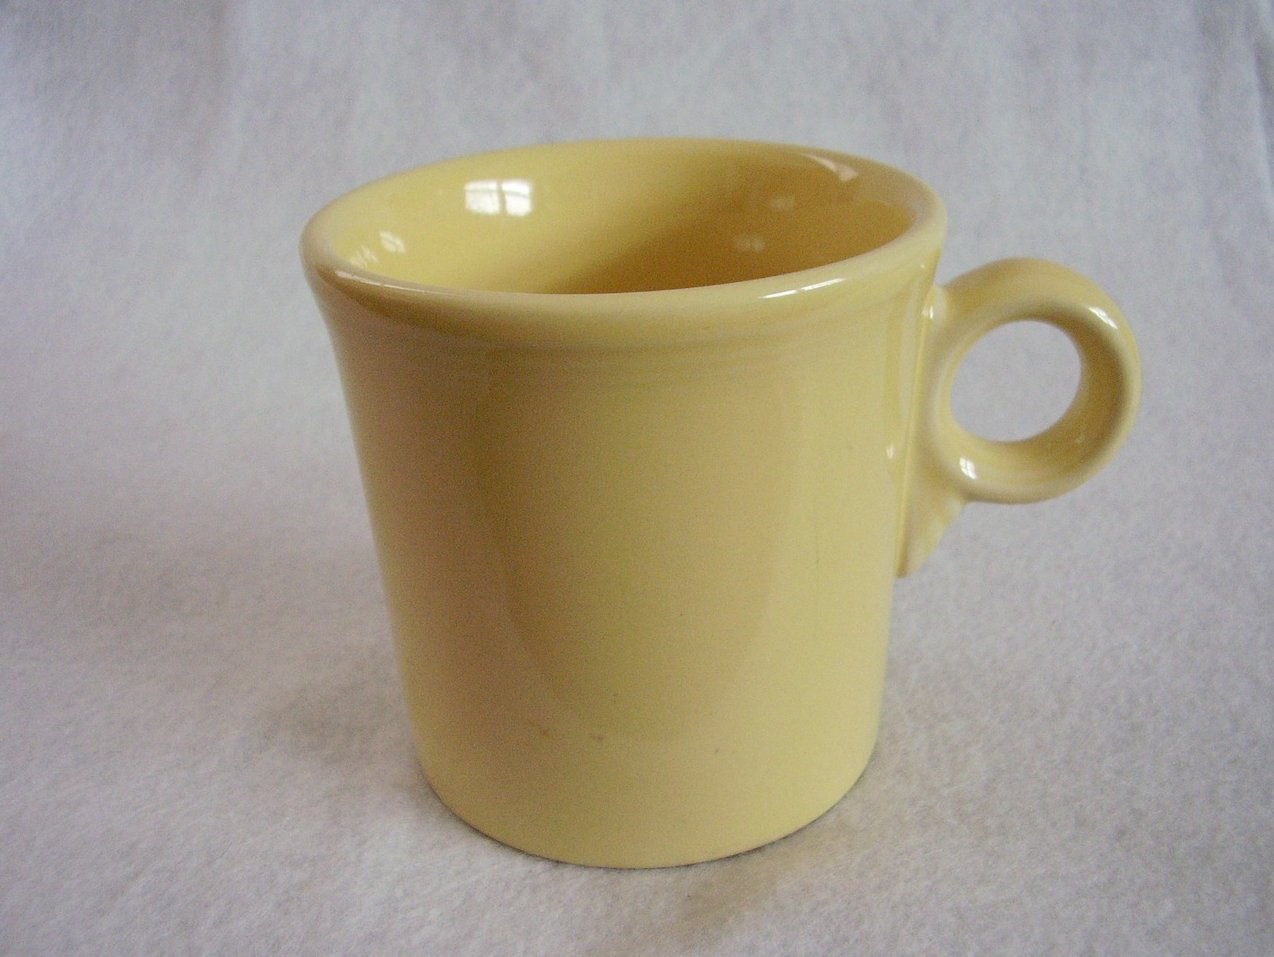 Fiesta yellow T & J mug